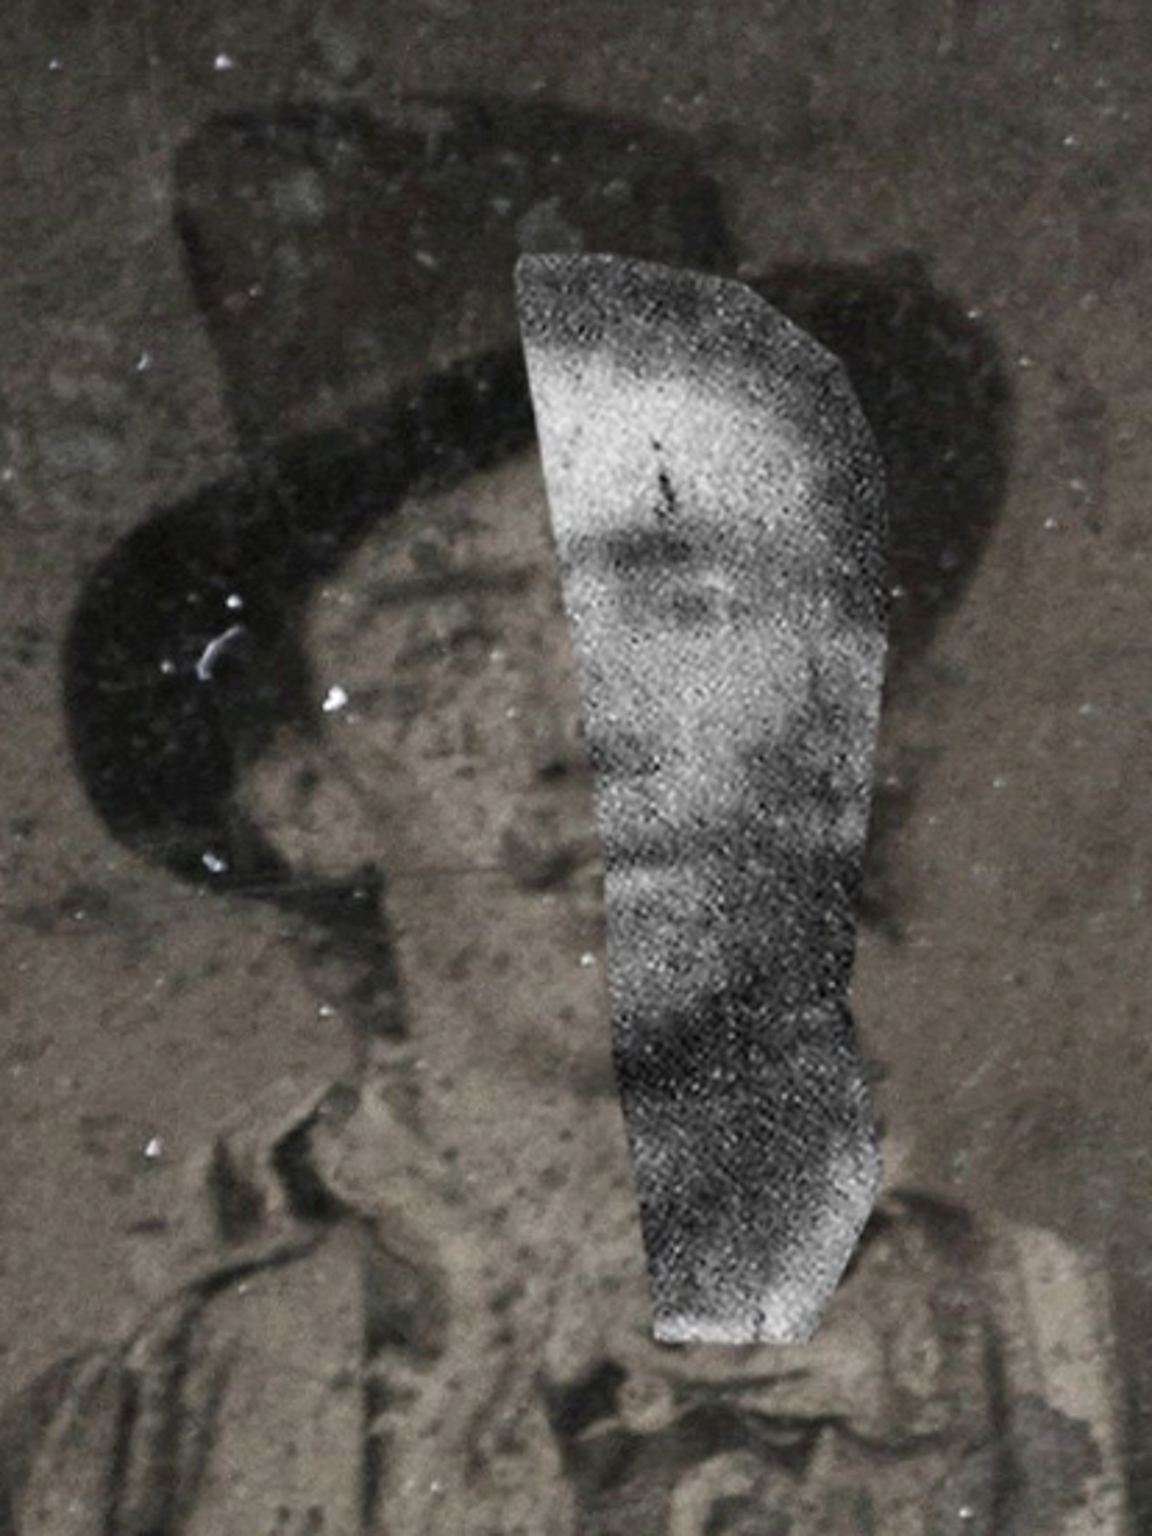 This photo shows the first known photo of Billy the Kid, which was purchased at auction by William Koch, with the face from Abrams' tintype suspected to be Billy overlaid to show facial symmetry.